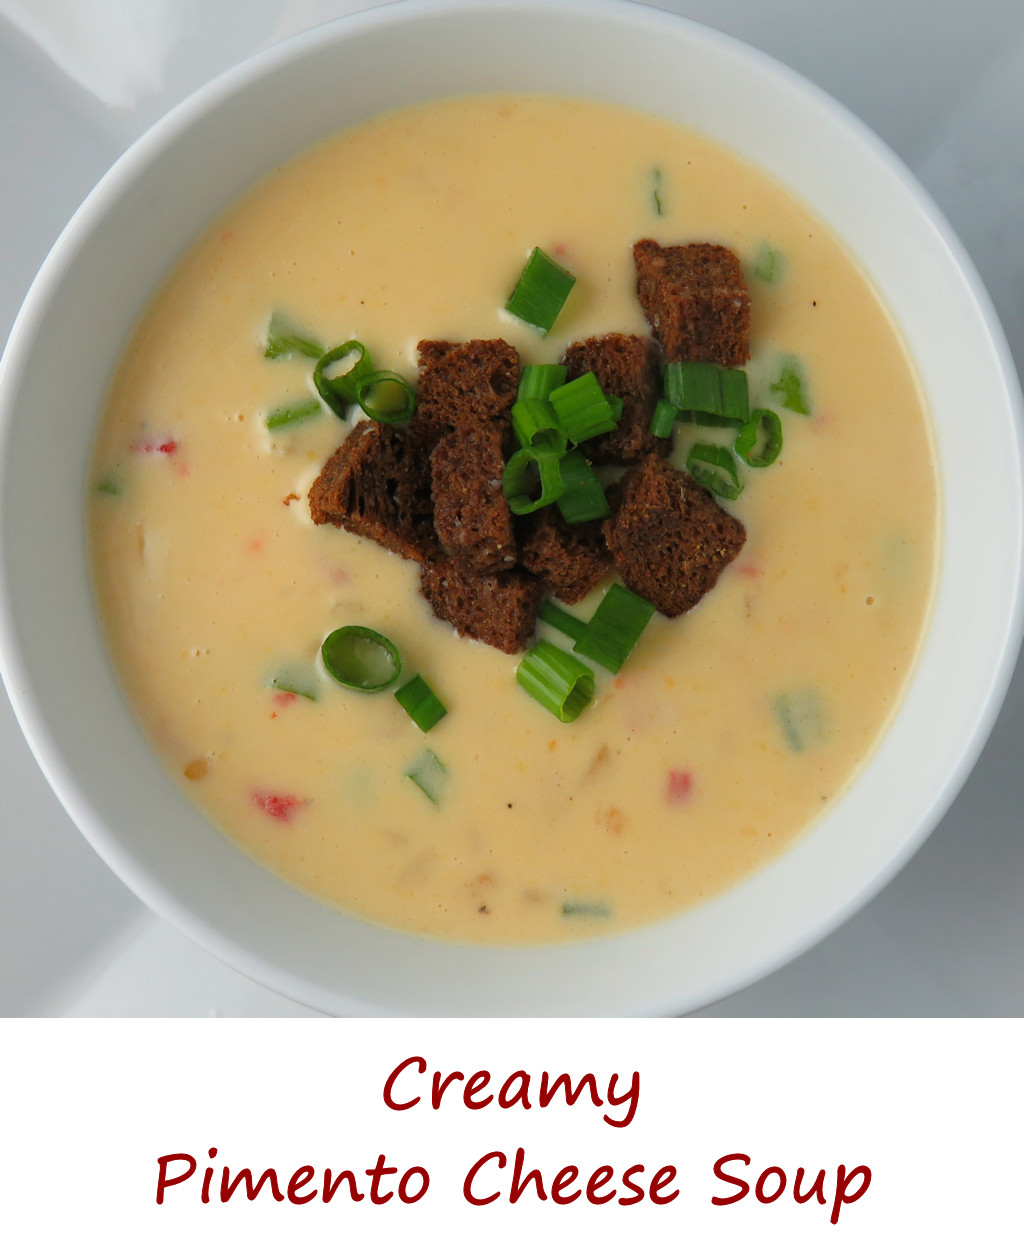 Creamy Pimento Cheese Soup